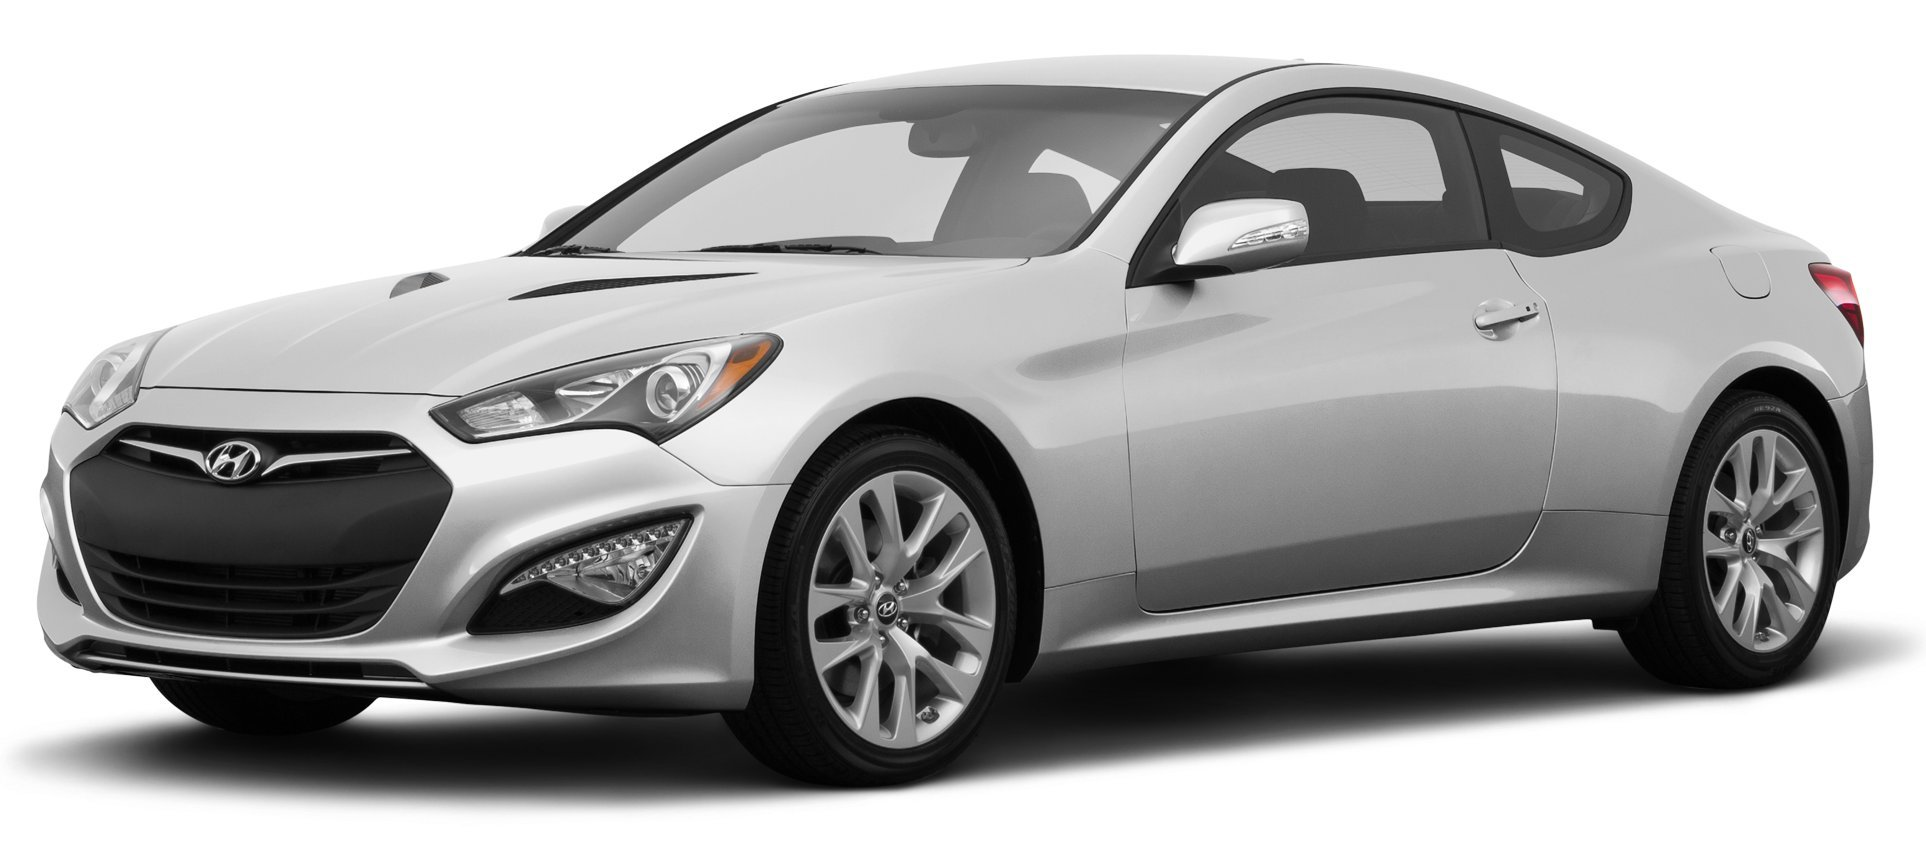 2015 hyundai genesis coupe reviews images and specs vehicles. Black Bedroom Furniture Sets. Home Design Ideas